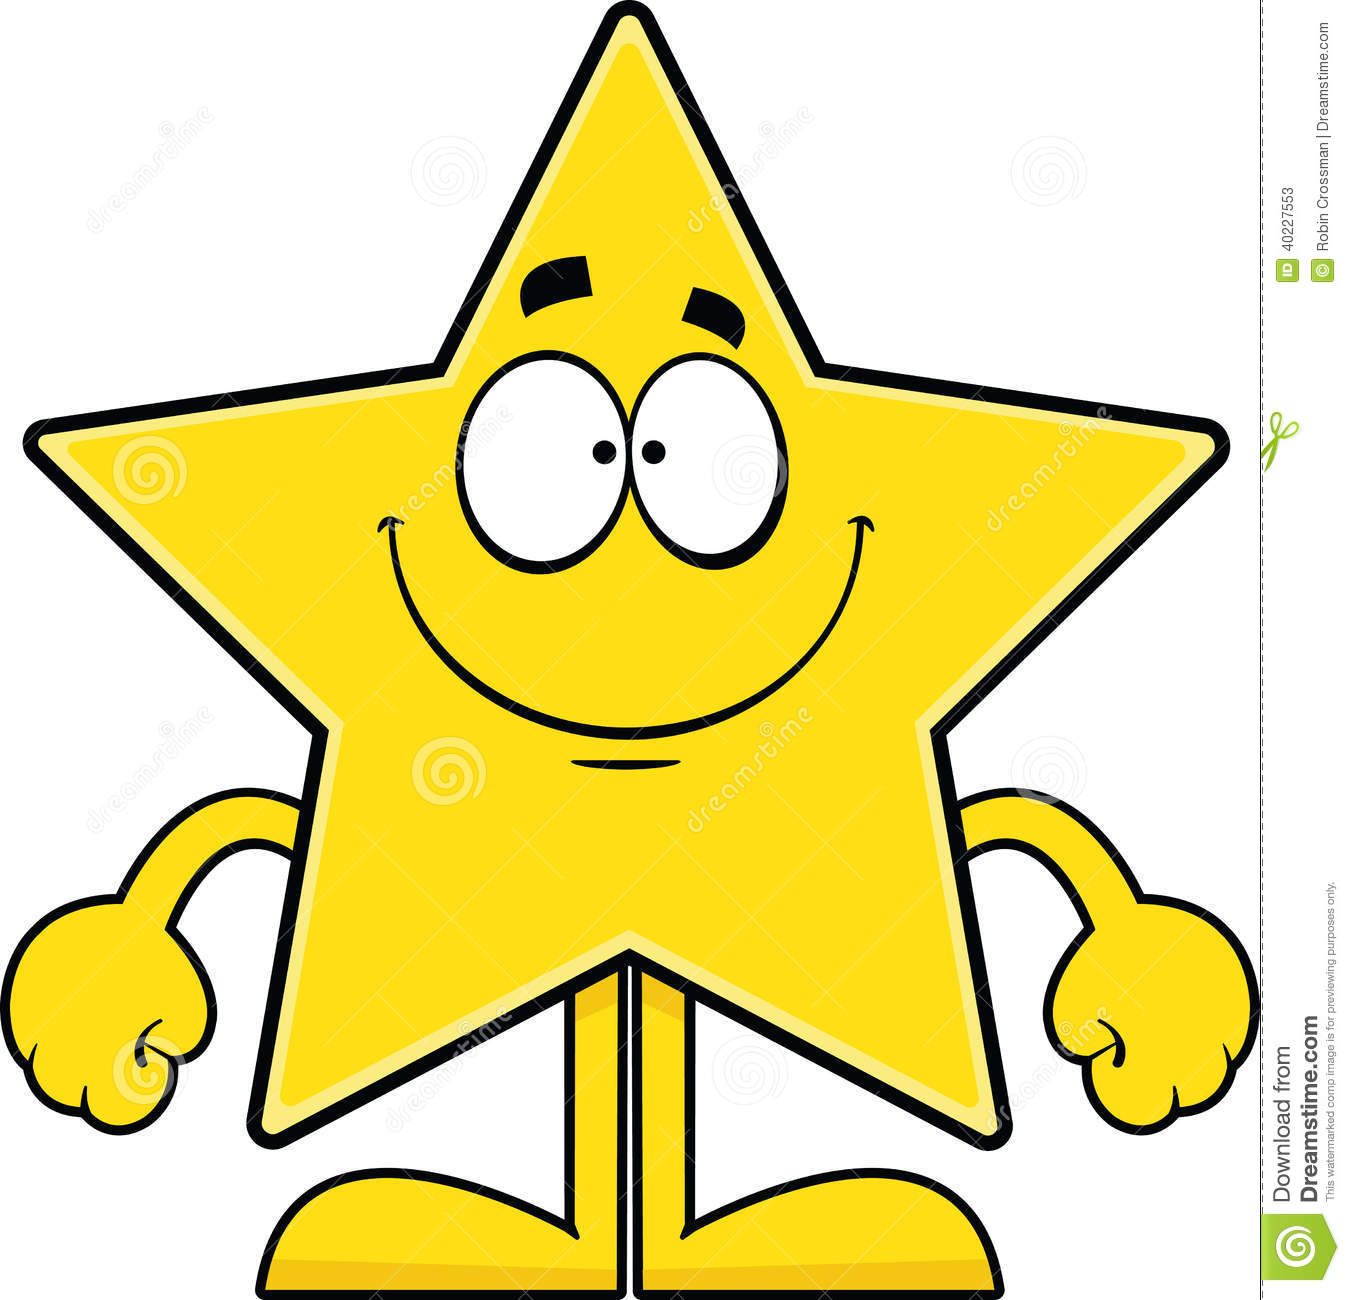 Smiling Star Clipart - Clipart Suggest